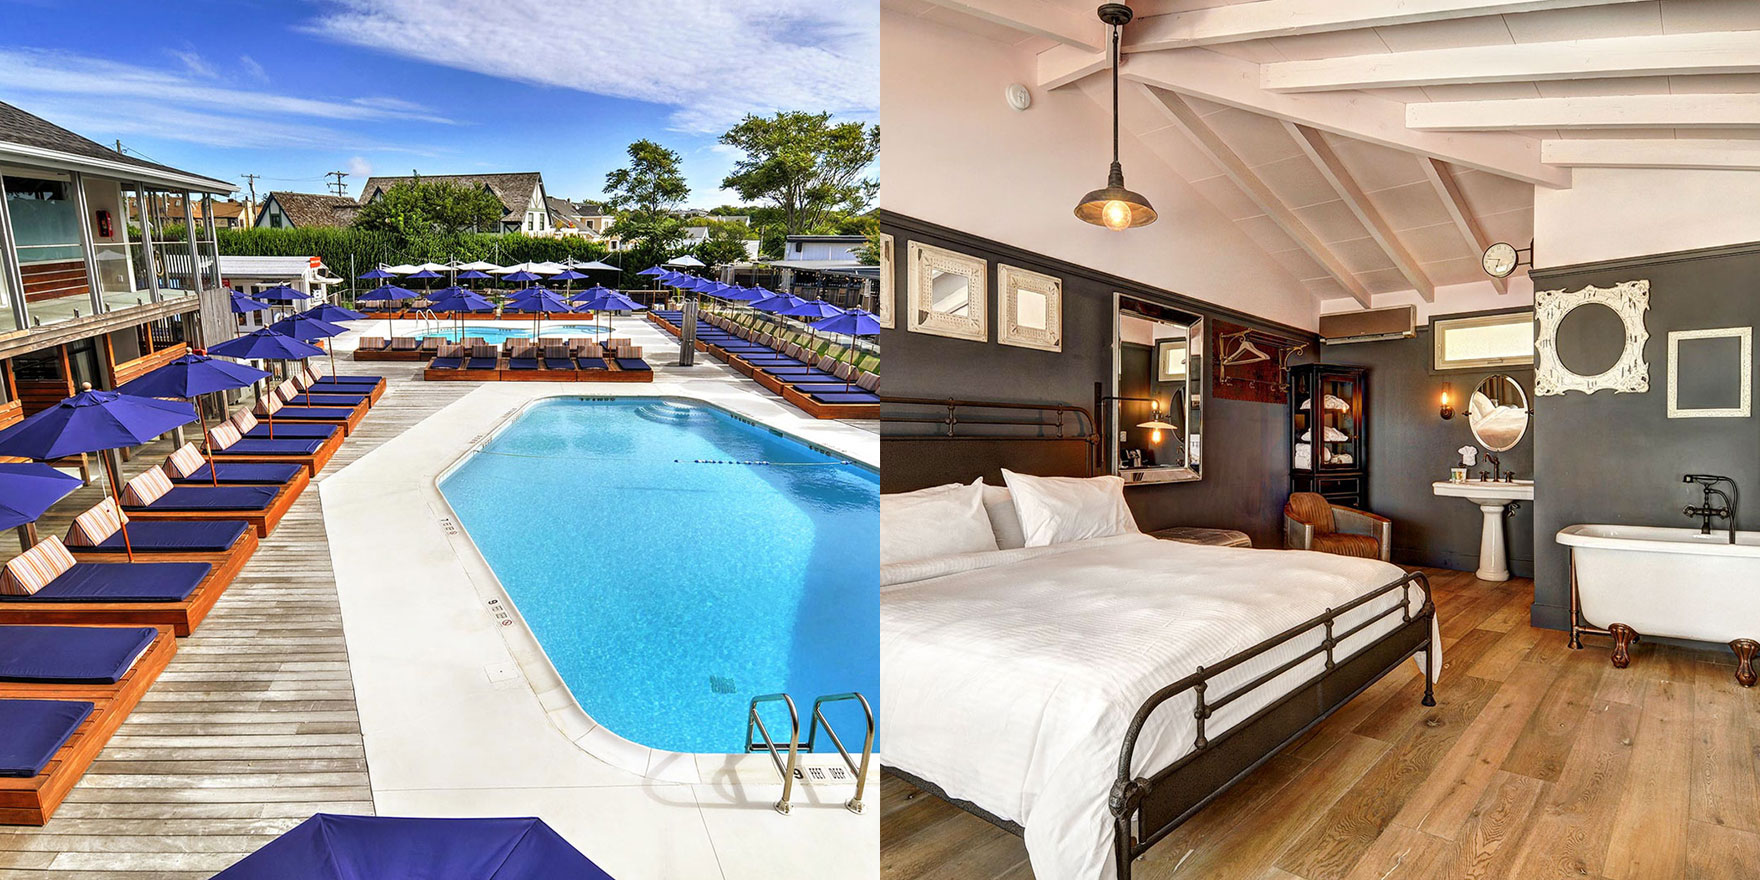 The Montauk Beach House – Boutique Hotel in Long Island